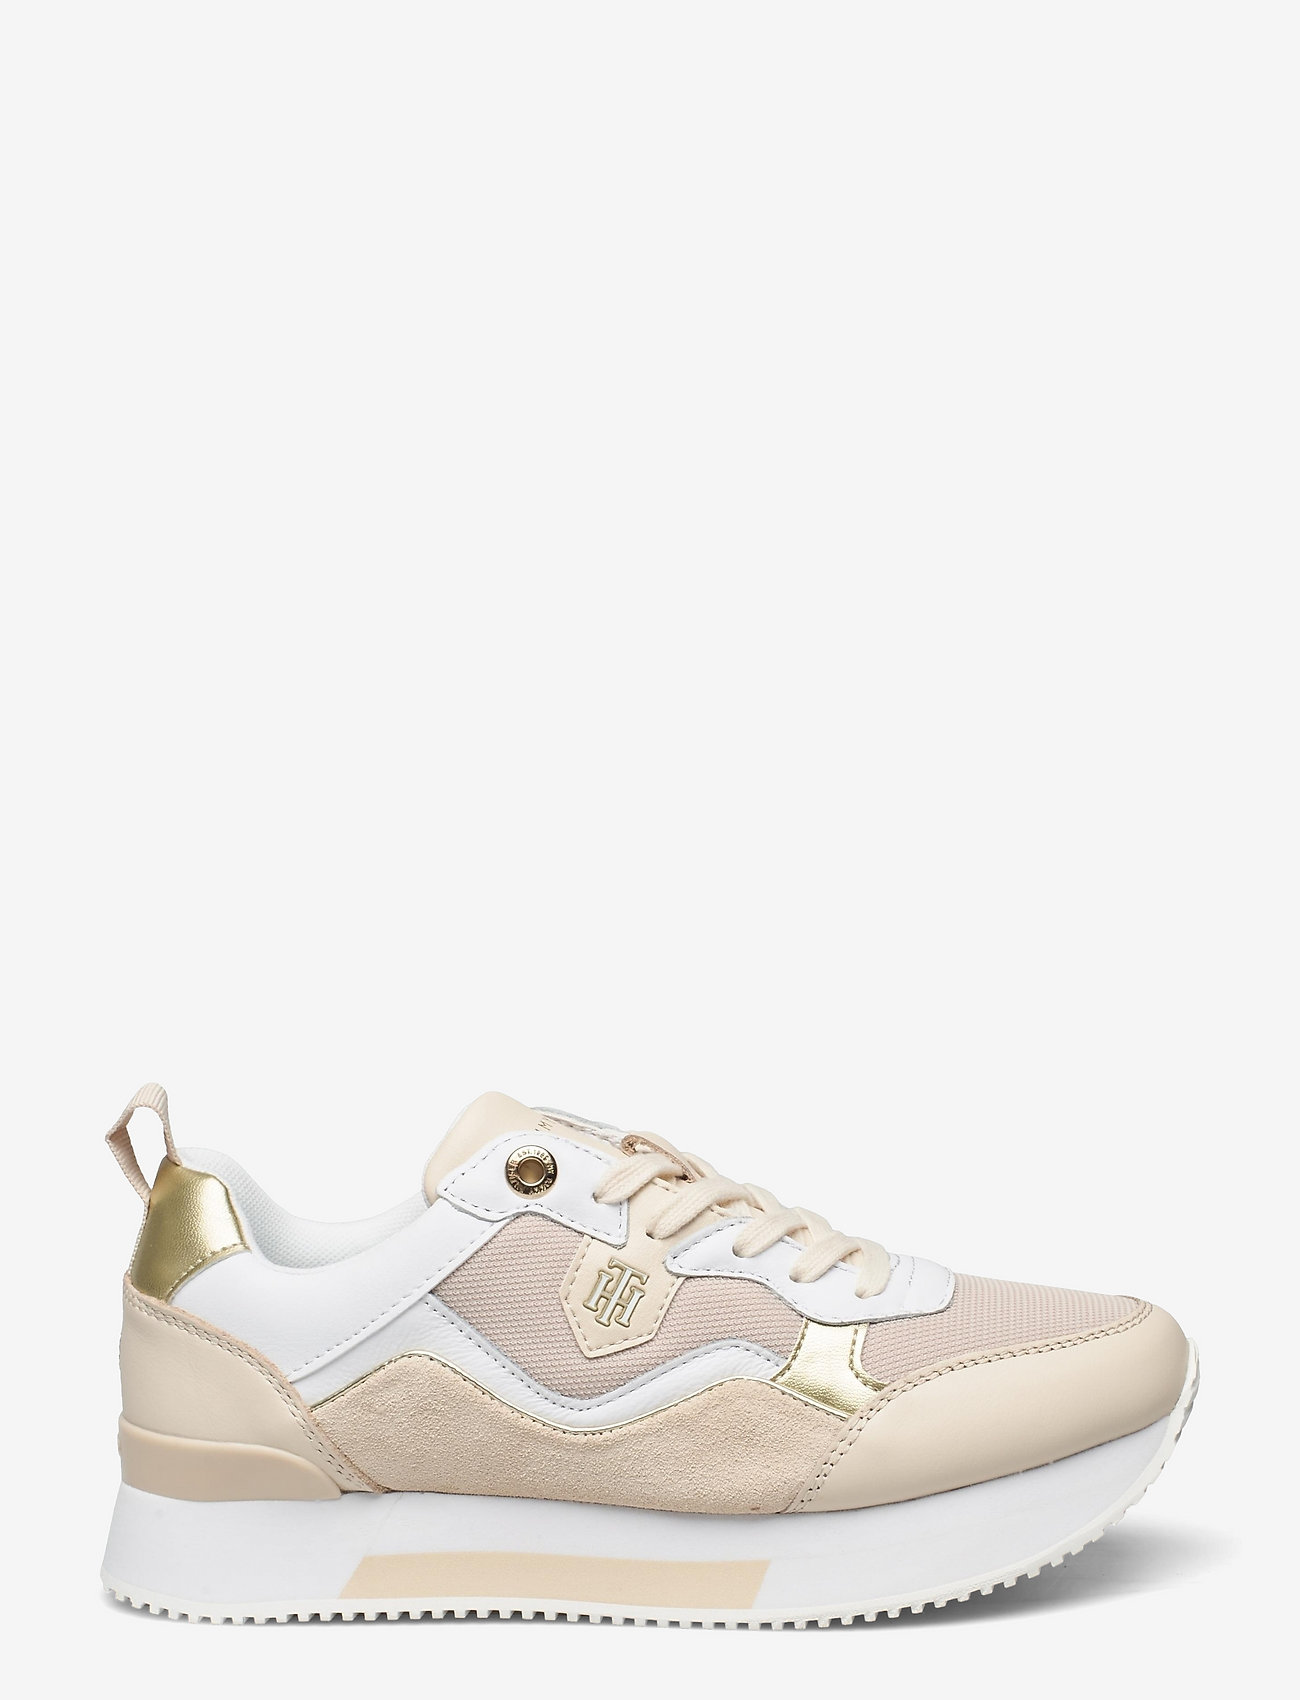 Tommy Hilfiger - MATERIAL MIX ACTIVE CITY SNEAKER - low top sneakers - sugarcane - 1